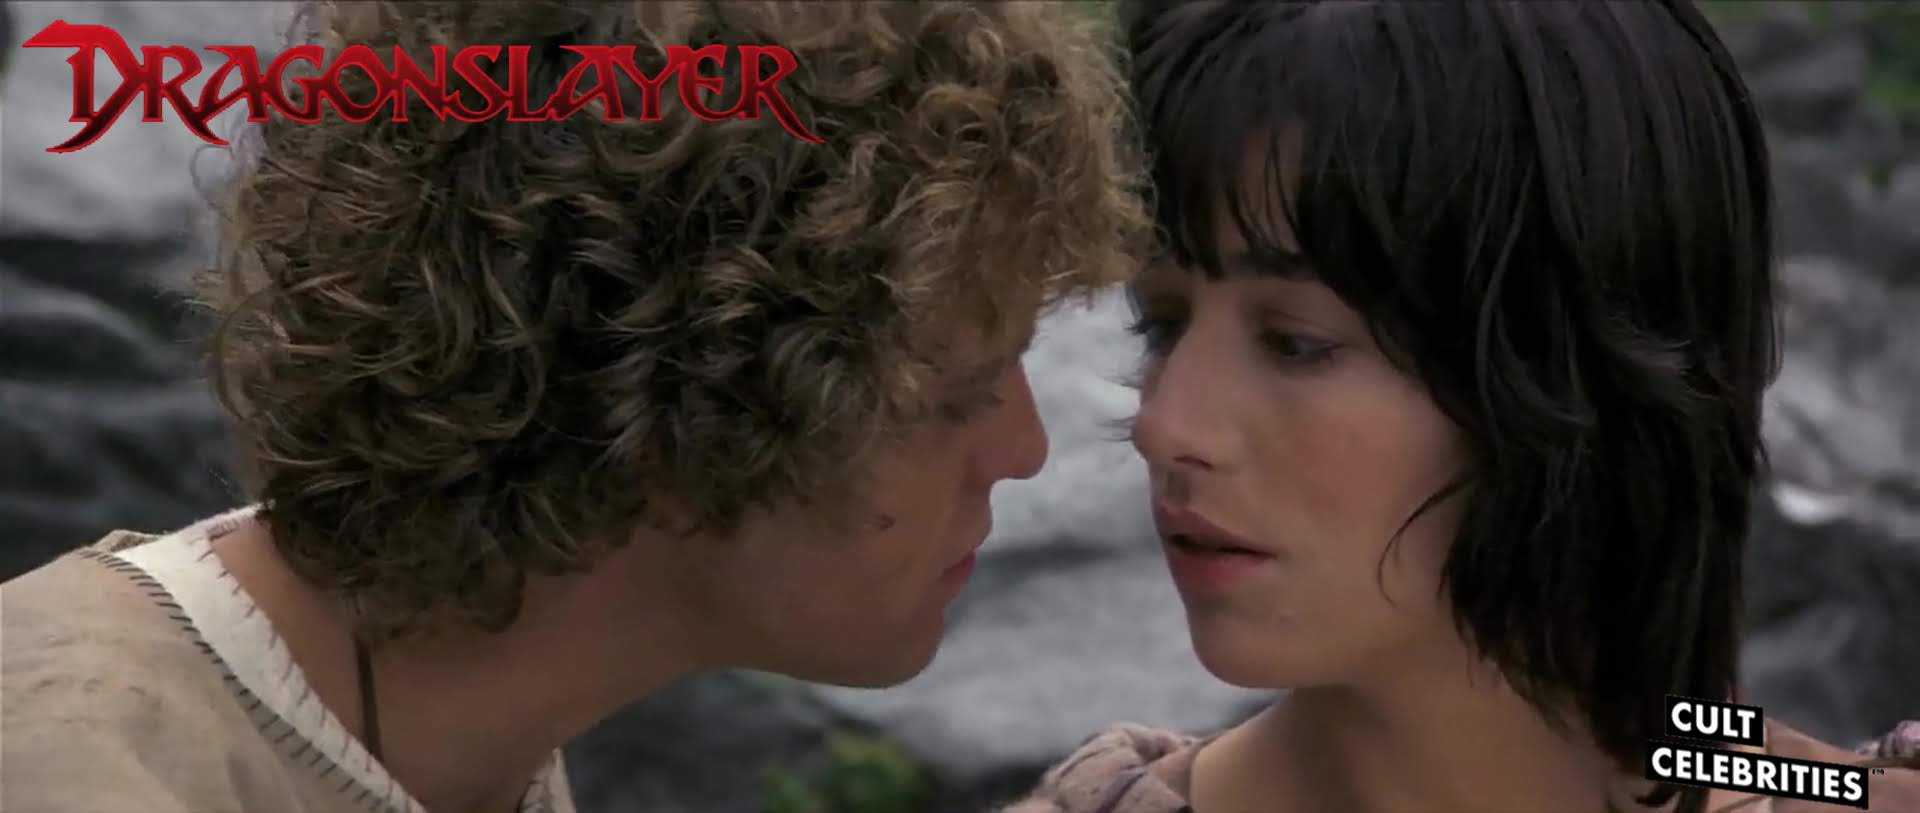 Peter MacNicol and Caitlin Clarke in Dragonslayer (1981)